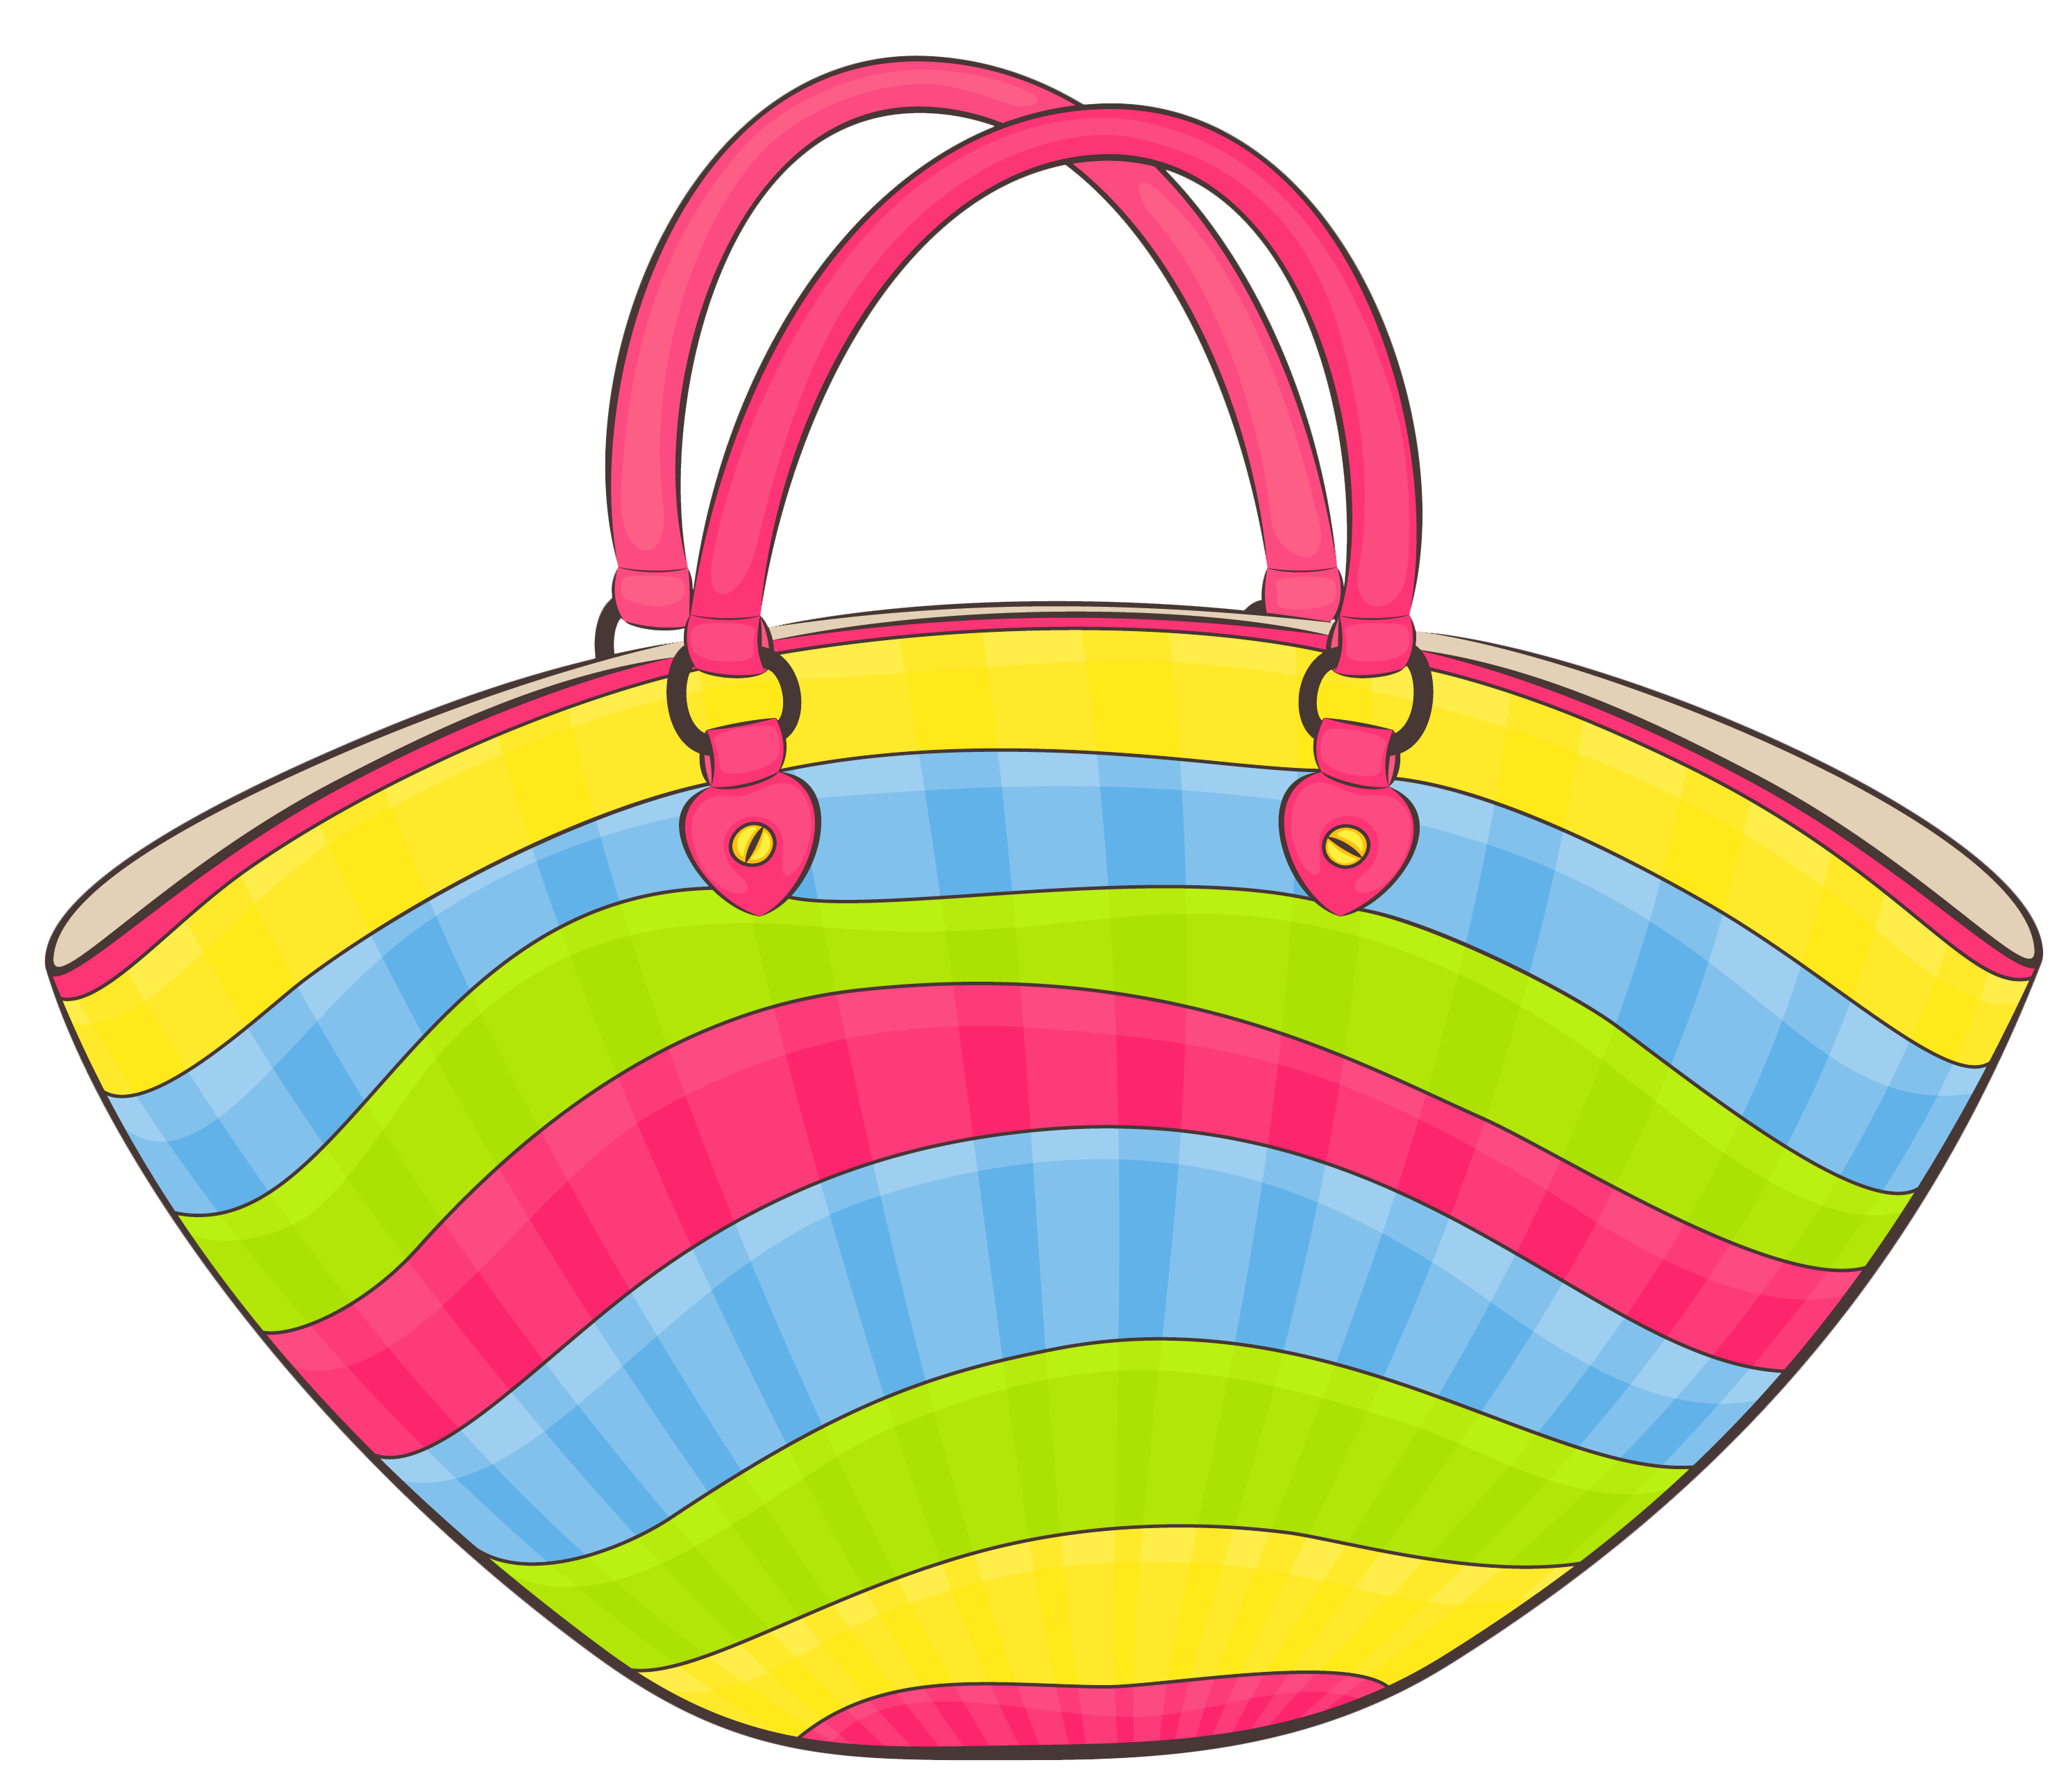 clip art Transparent beach bag png. Supermarket clipart cute store